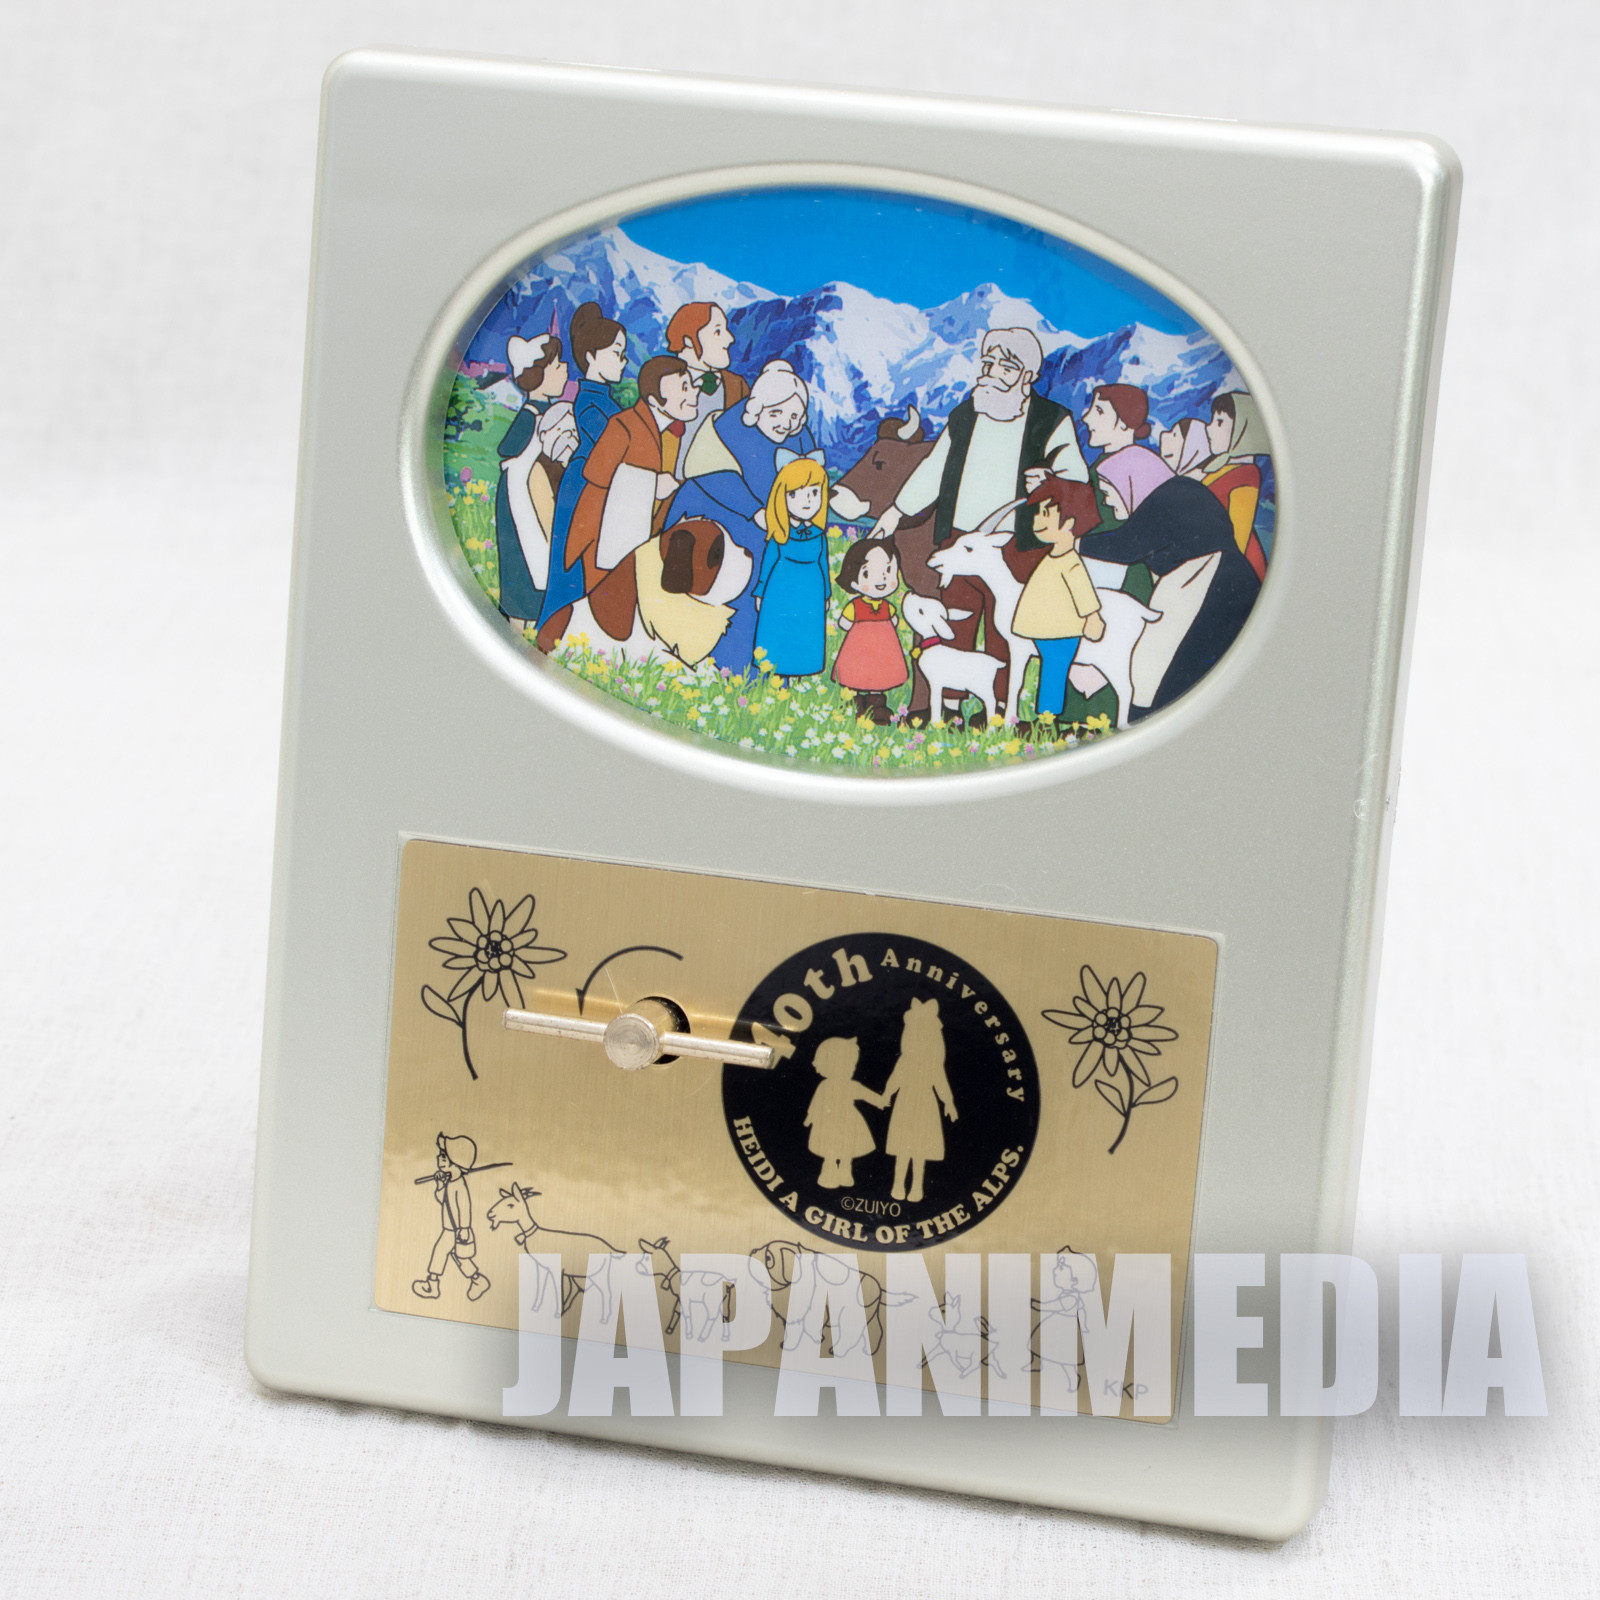 Heidi Girl of the Alps 40th Anniversary Limited Music Box Op Theme Song JAPAN 2